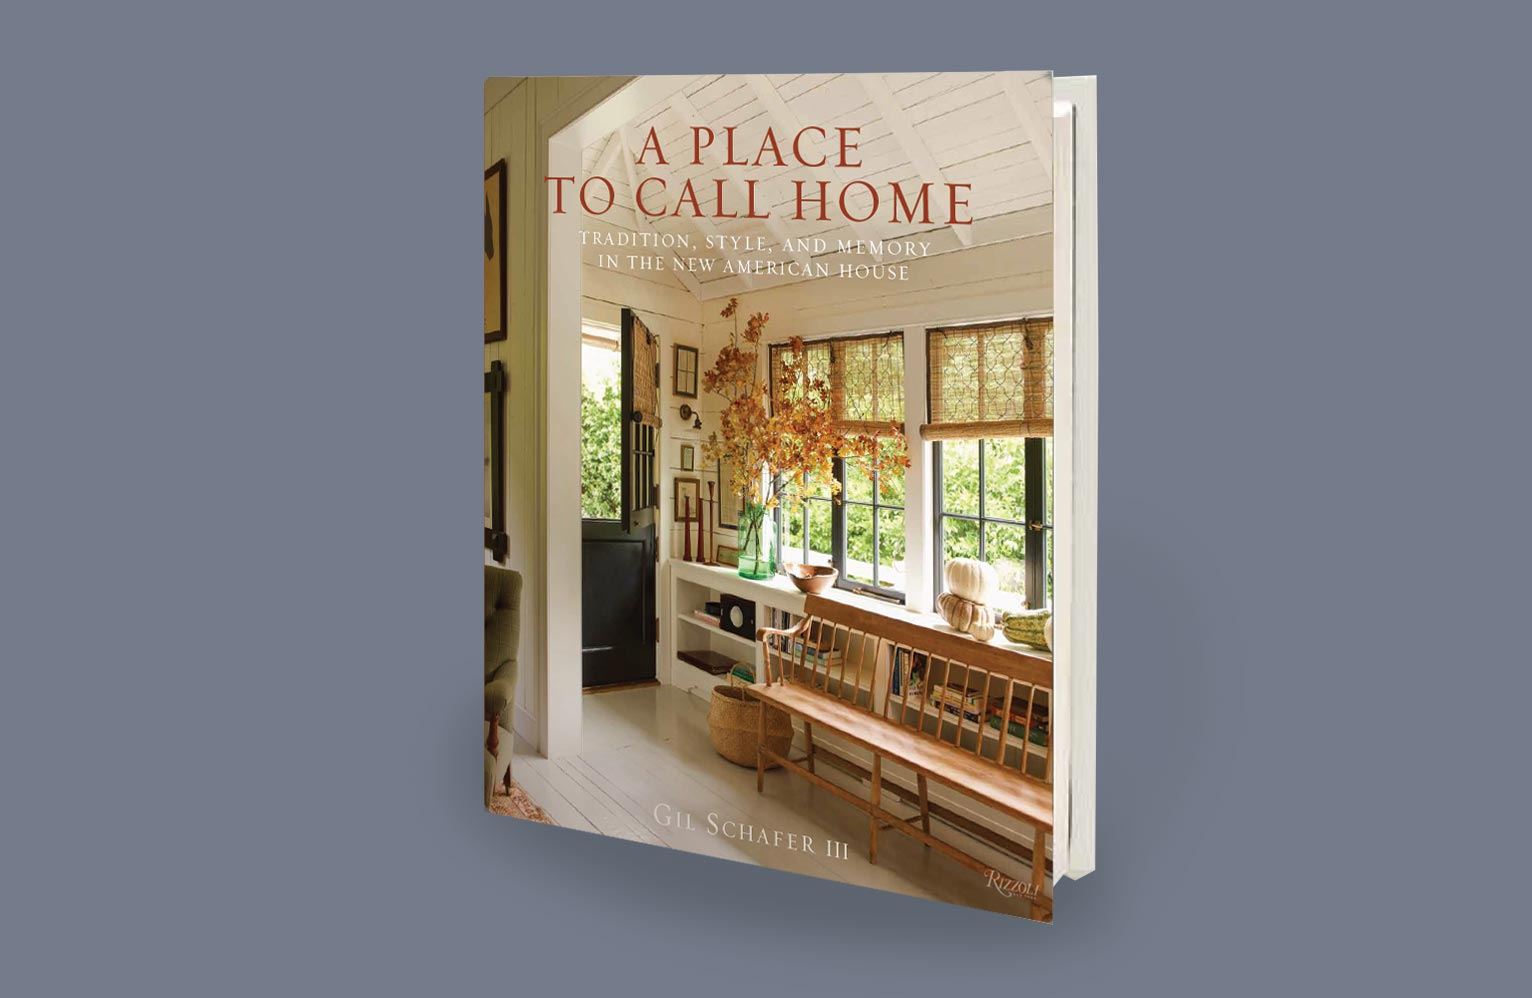 IN HIS BESTSELLING FIRST BOOK, The Great American House, Gil Schafer  Explored The Qualities That Make A House A Home U2013 Architecture, Landscape,  ...